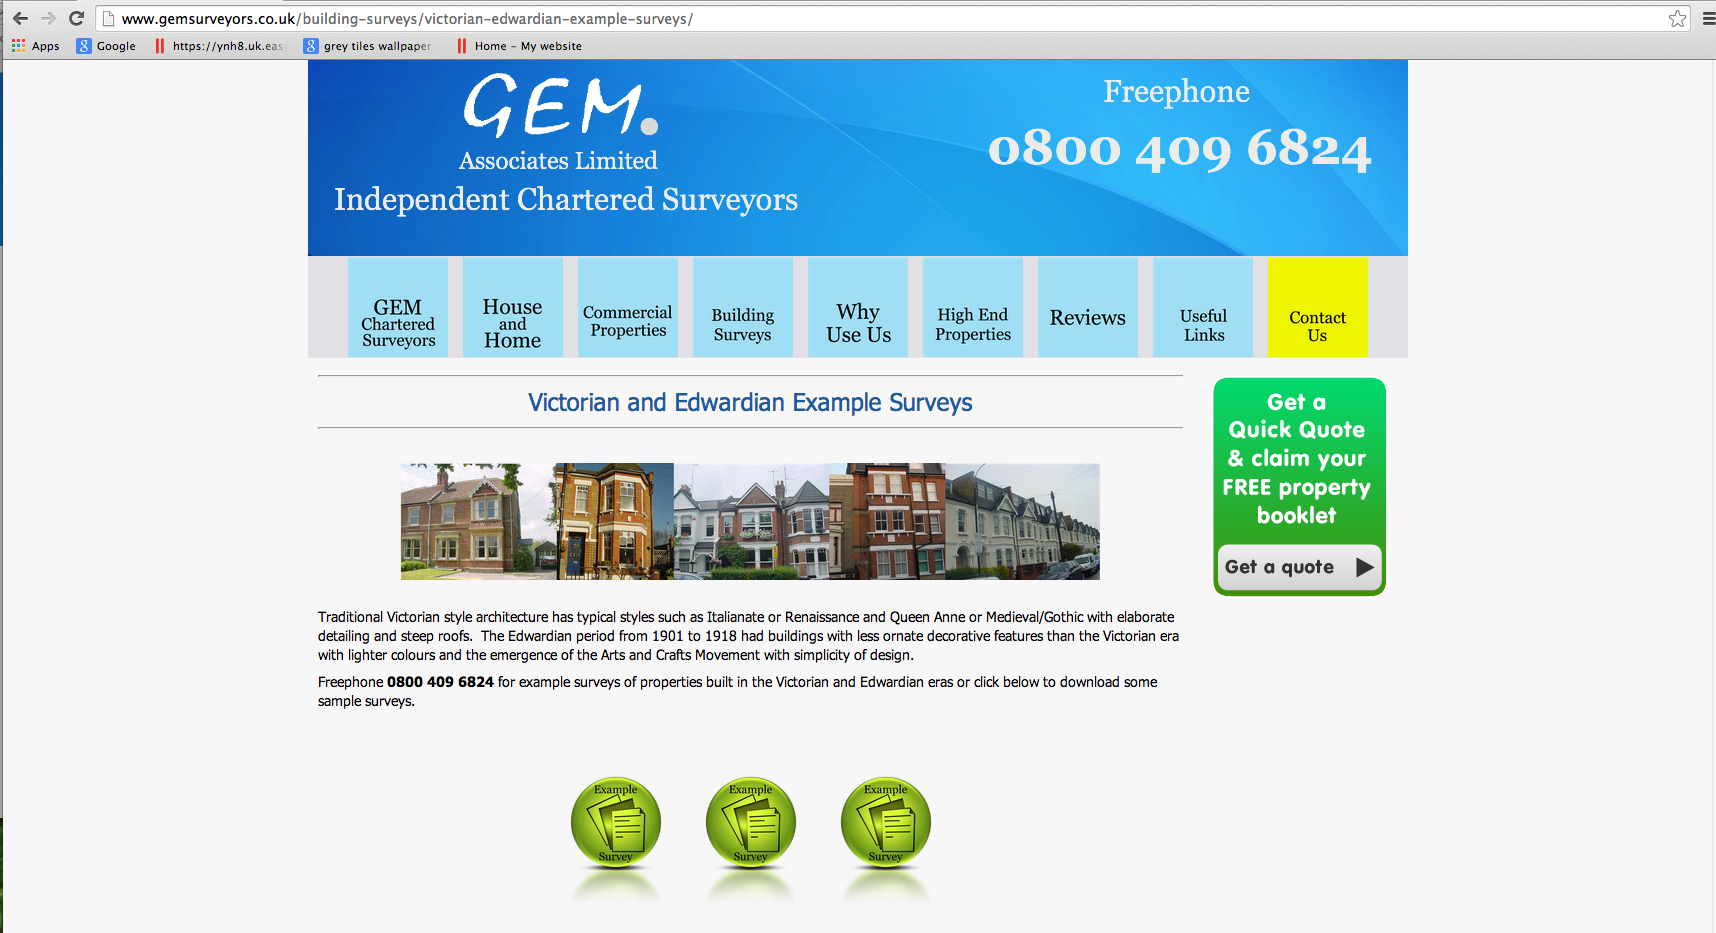 GEM Surveyors - Victorian and Edwardian Example Surveys